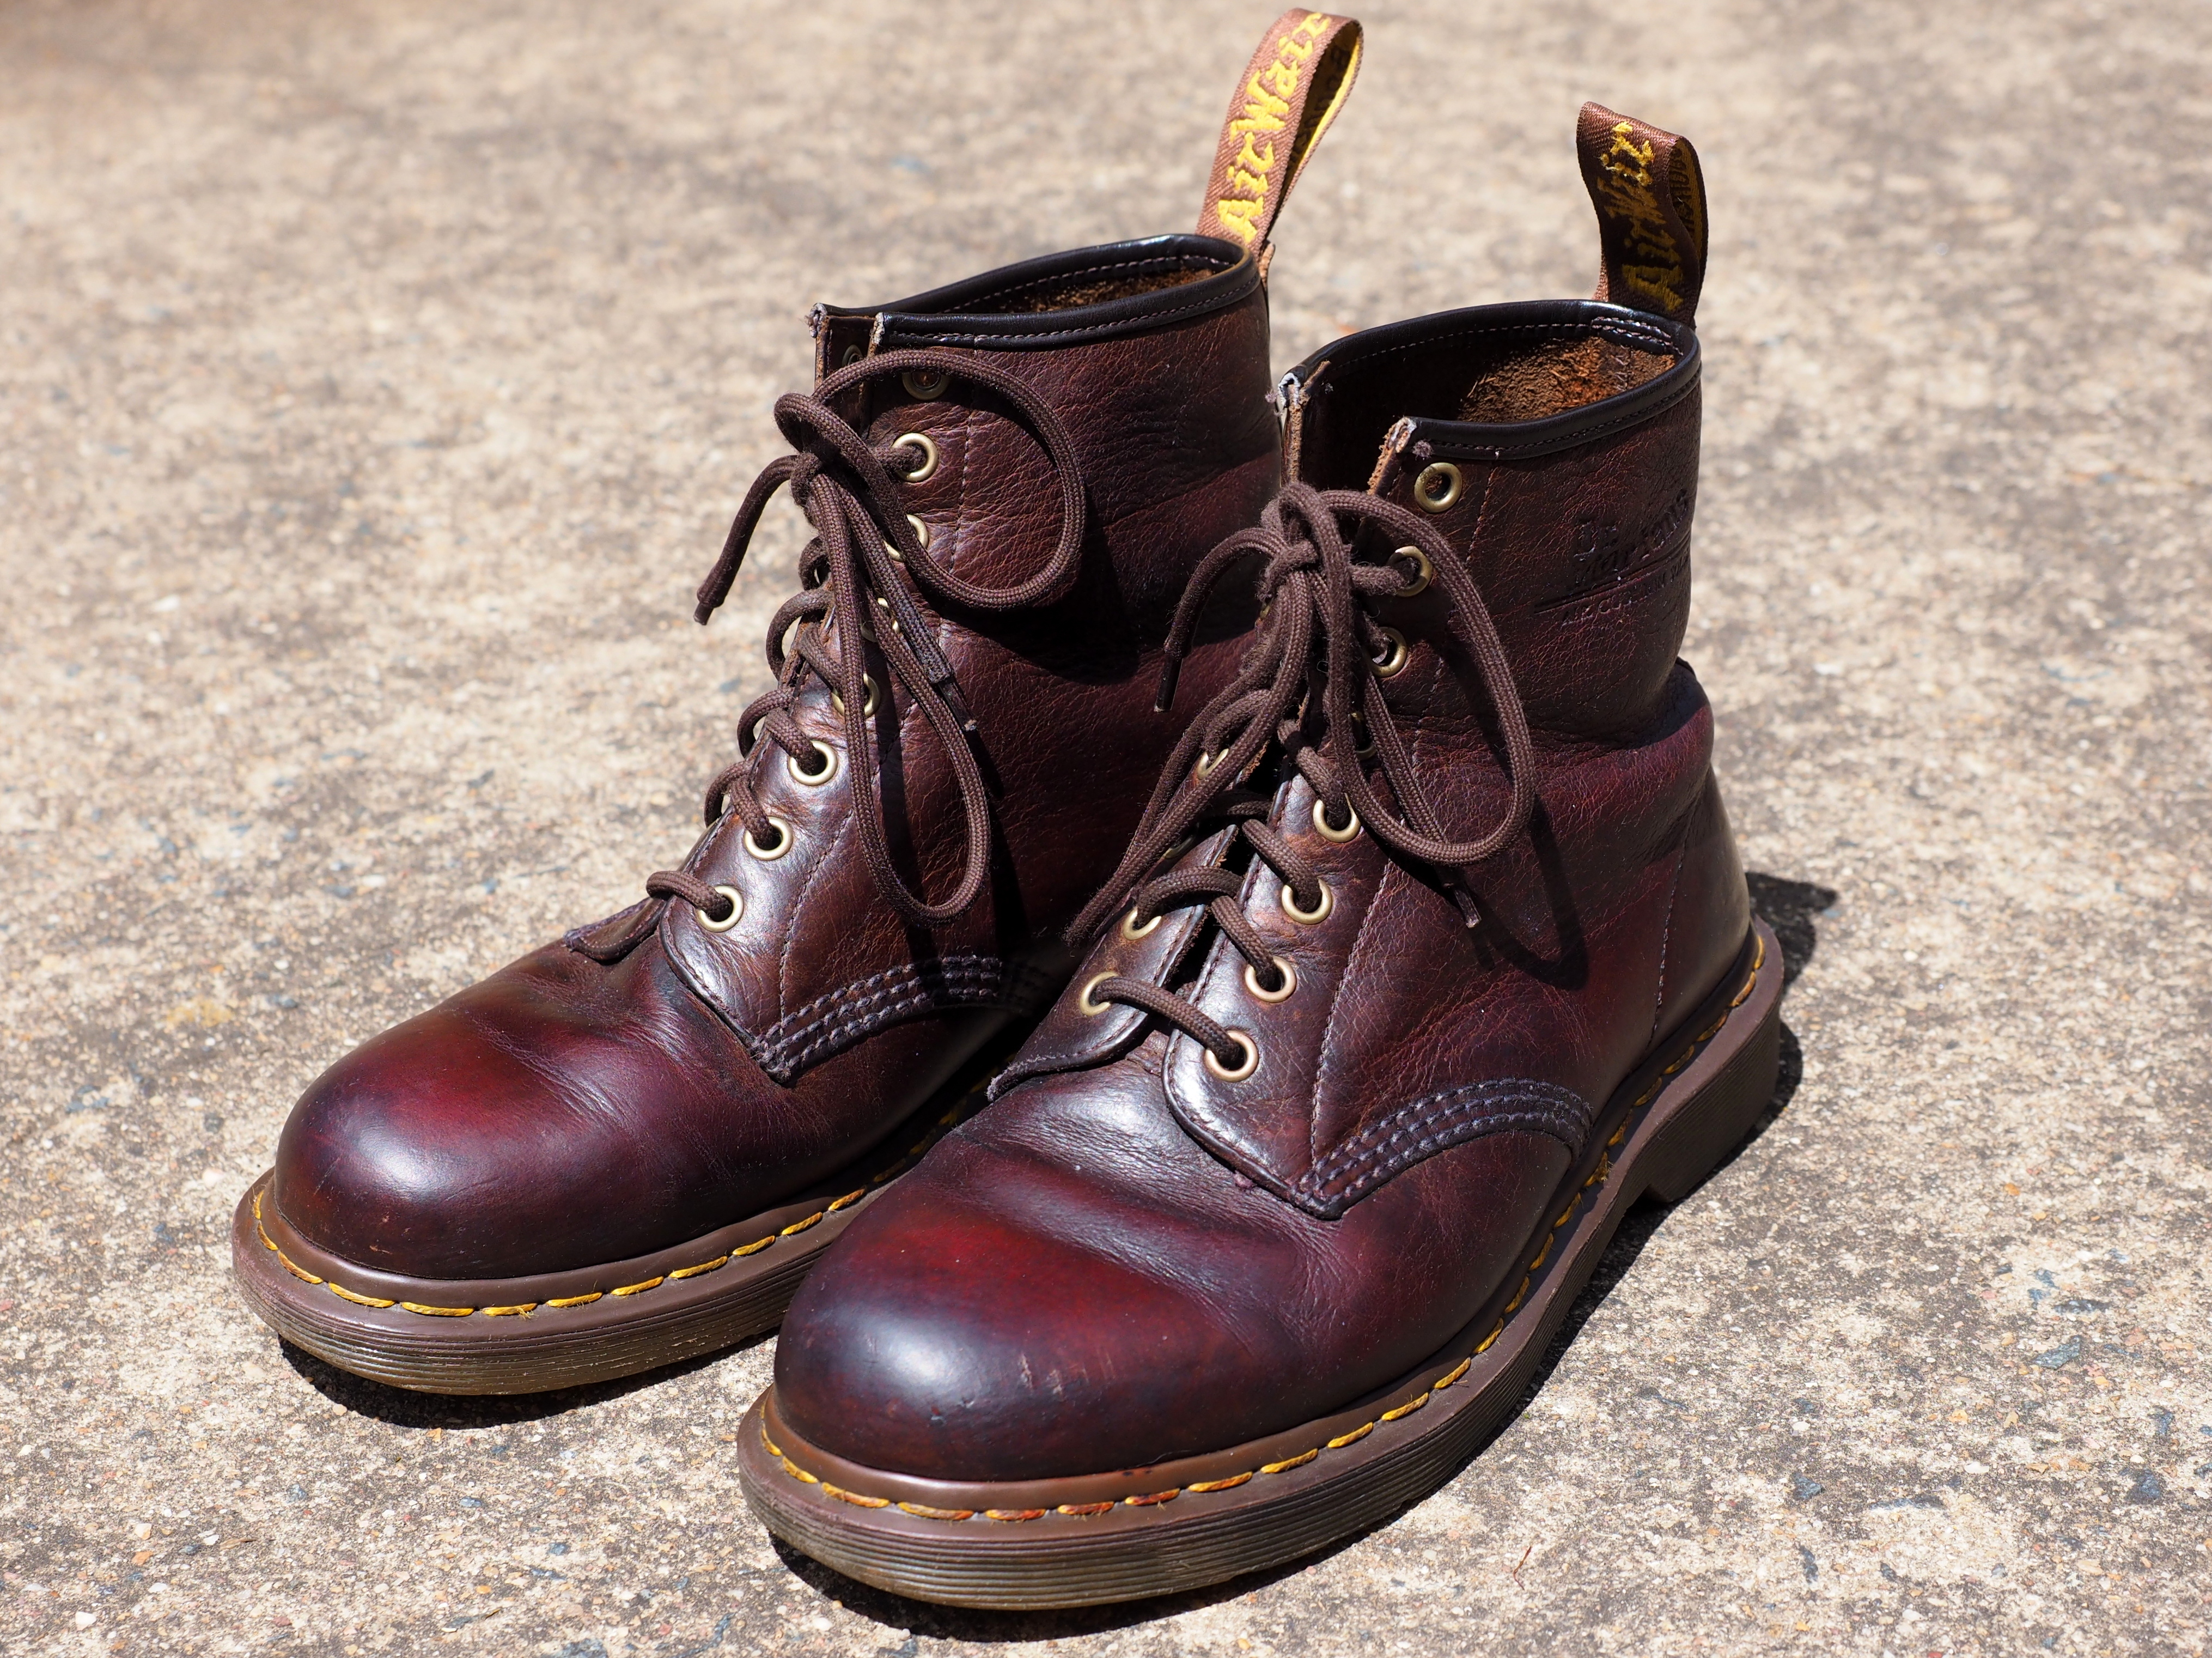 e8e07cdeb153 File Pair of brown Dr Martens 1460 boots.jpg - Wikimedia Commons